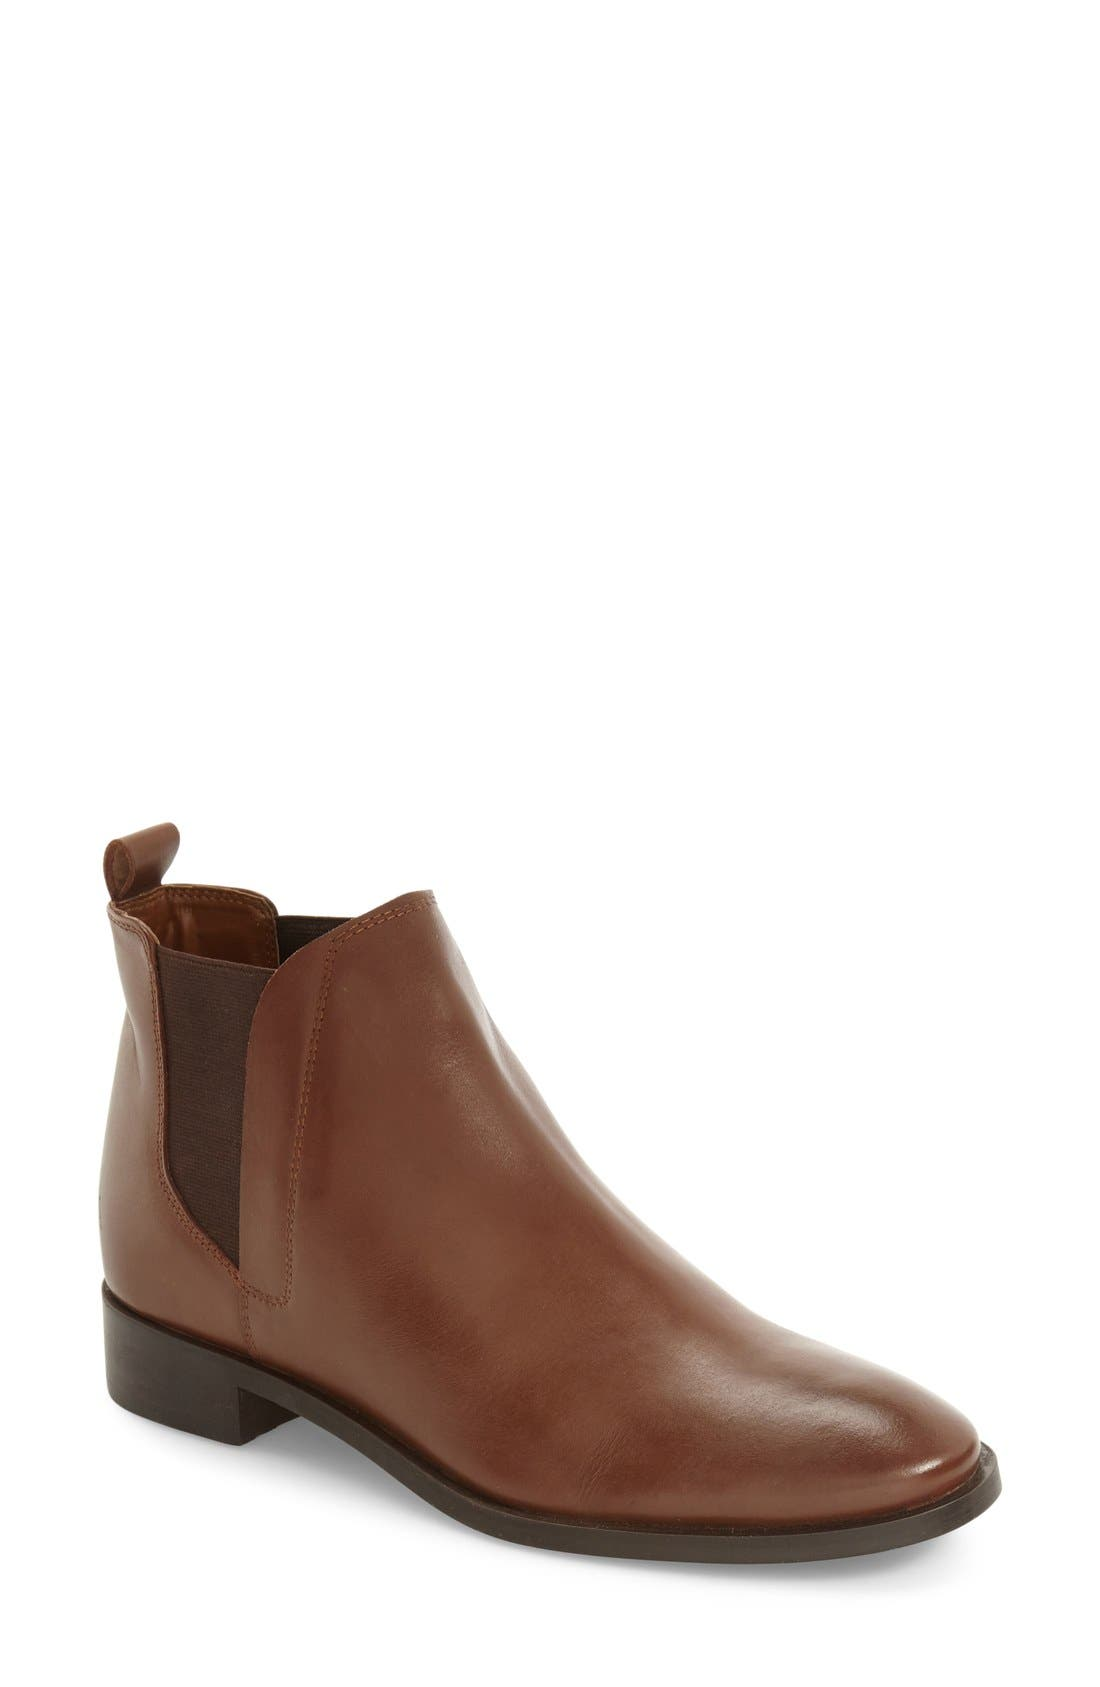 Alternate Image 1 Selected - Topshop Kaiser Chelsea Boot (Women)